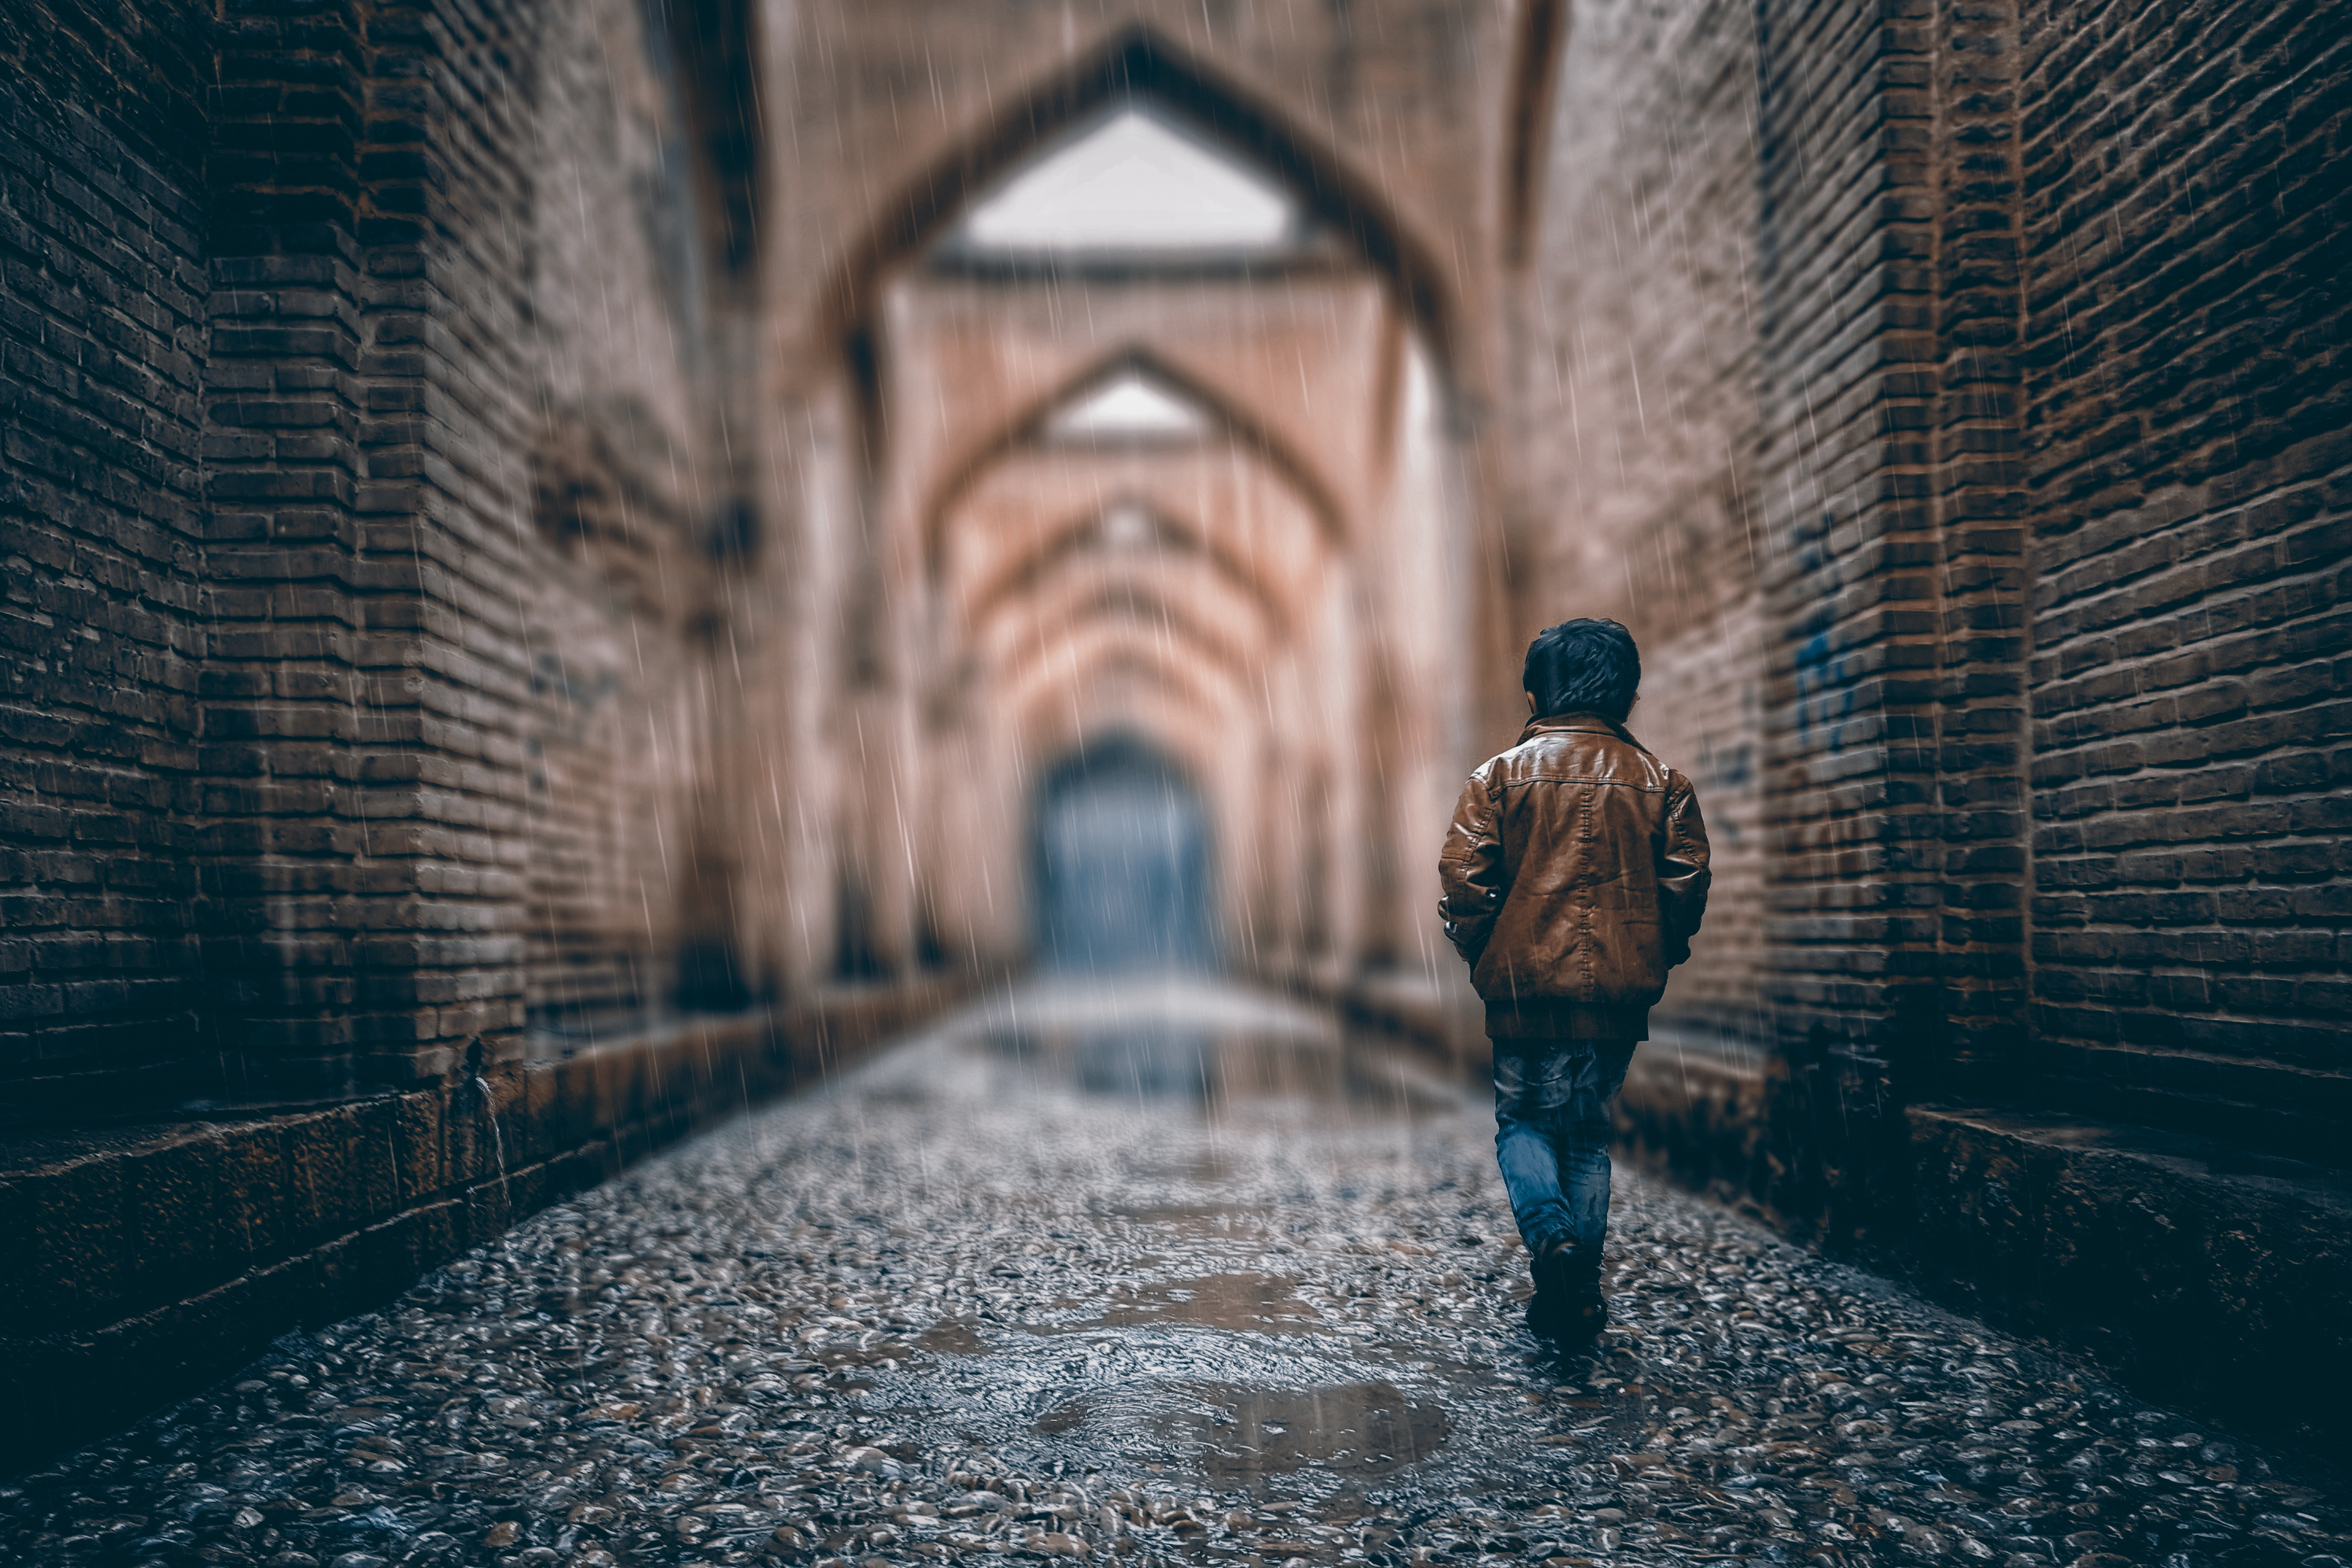 113751 download wallpaper Rain, Walls, Miscellanea, Miscellaneous, Stone, Arch, Street, Arches, Boy screensavers and pictures for free